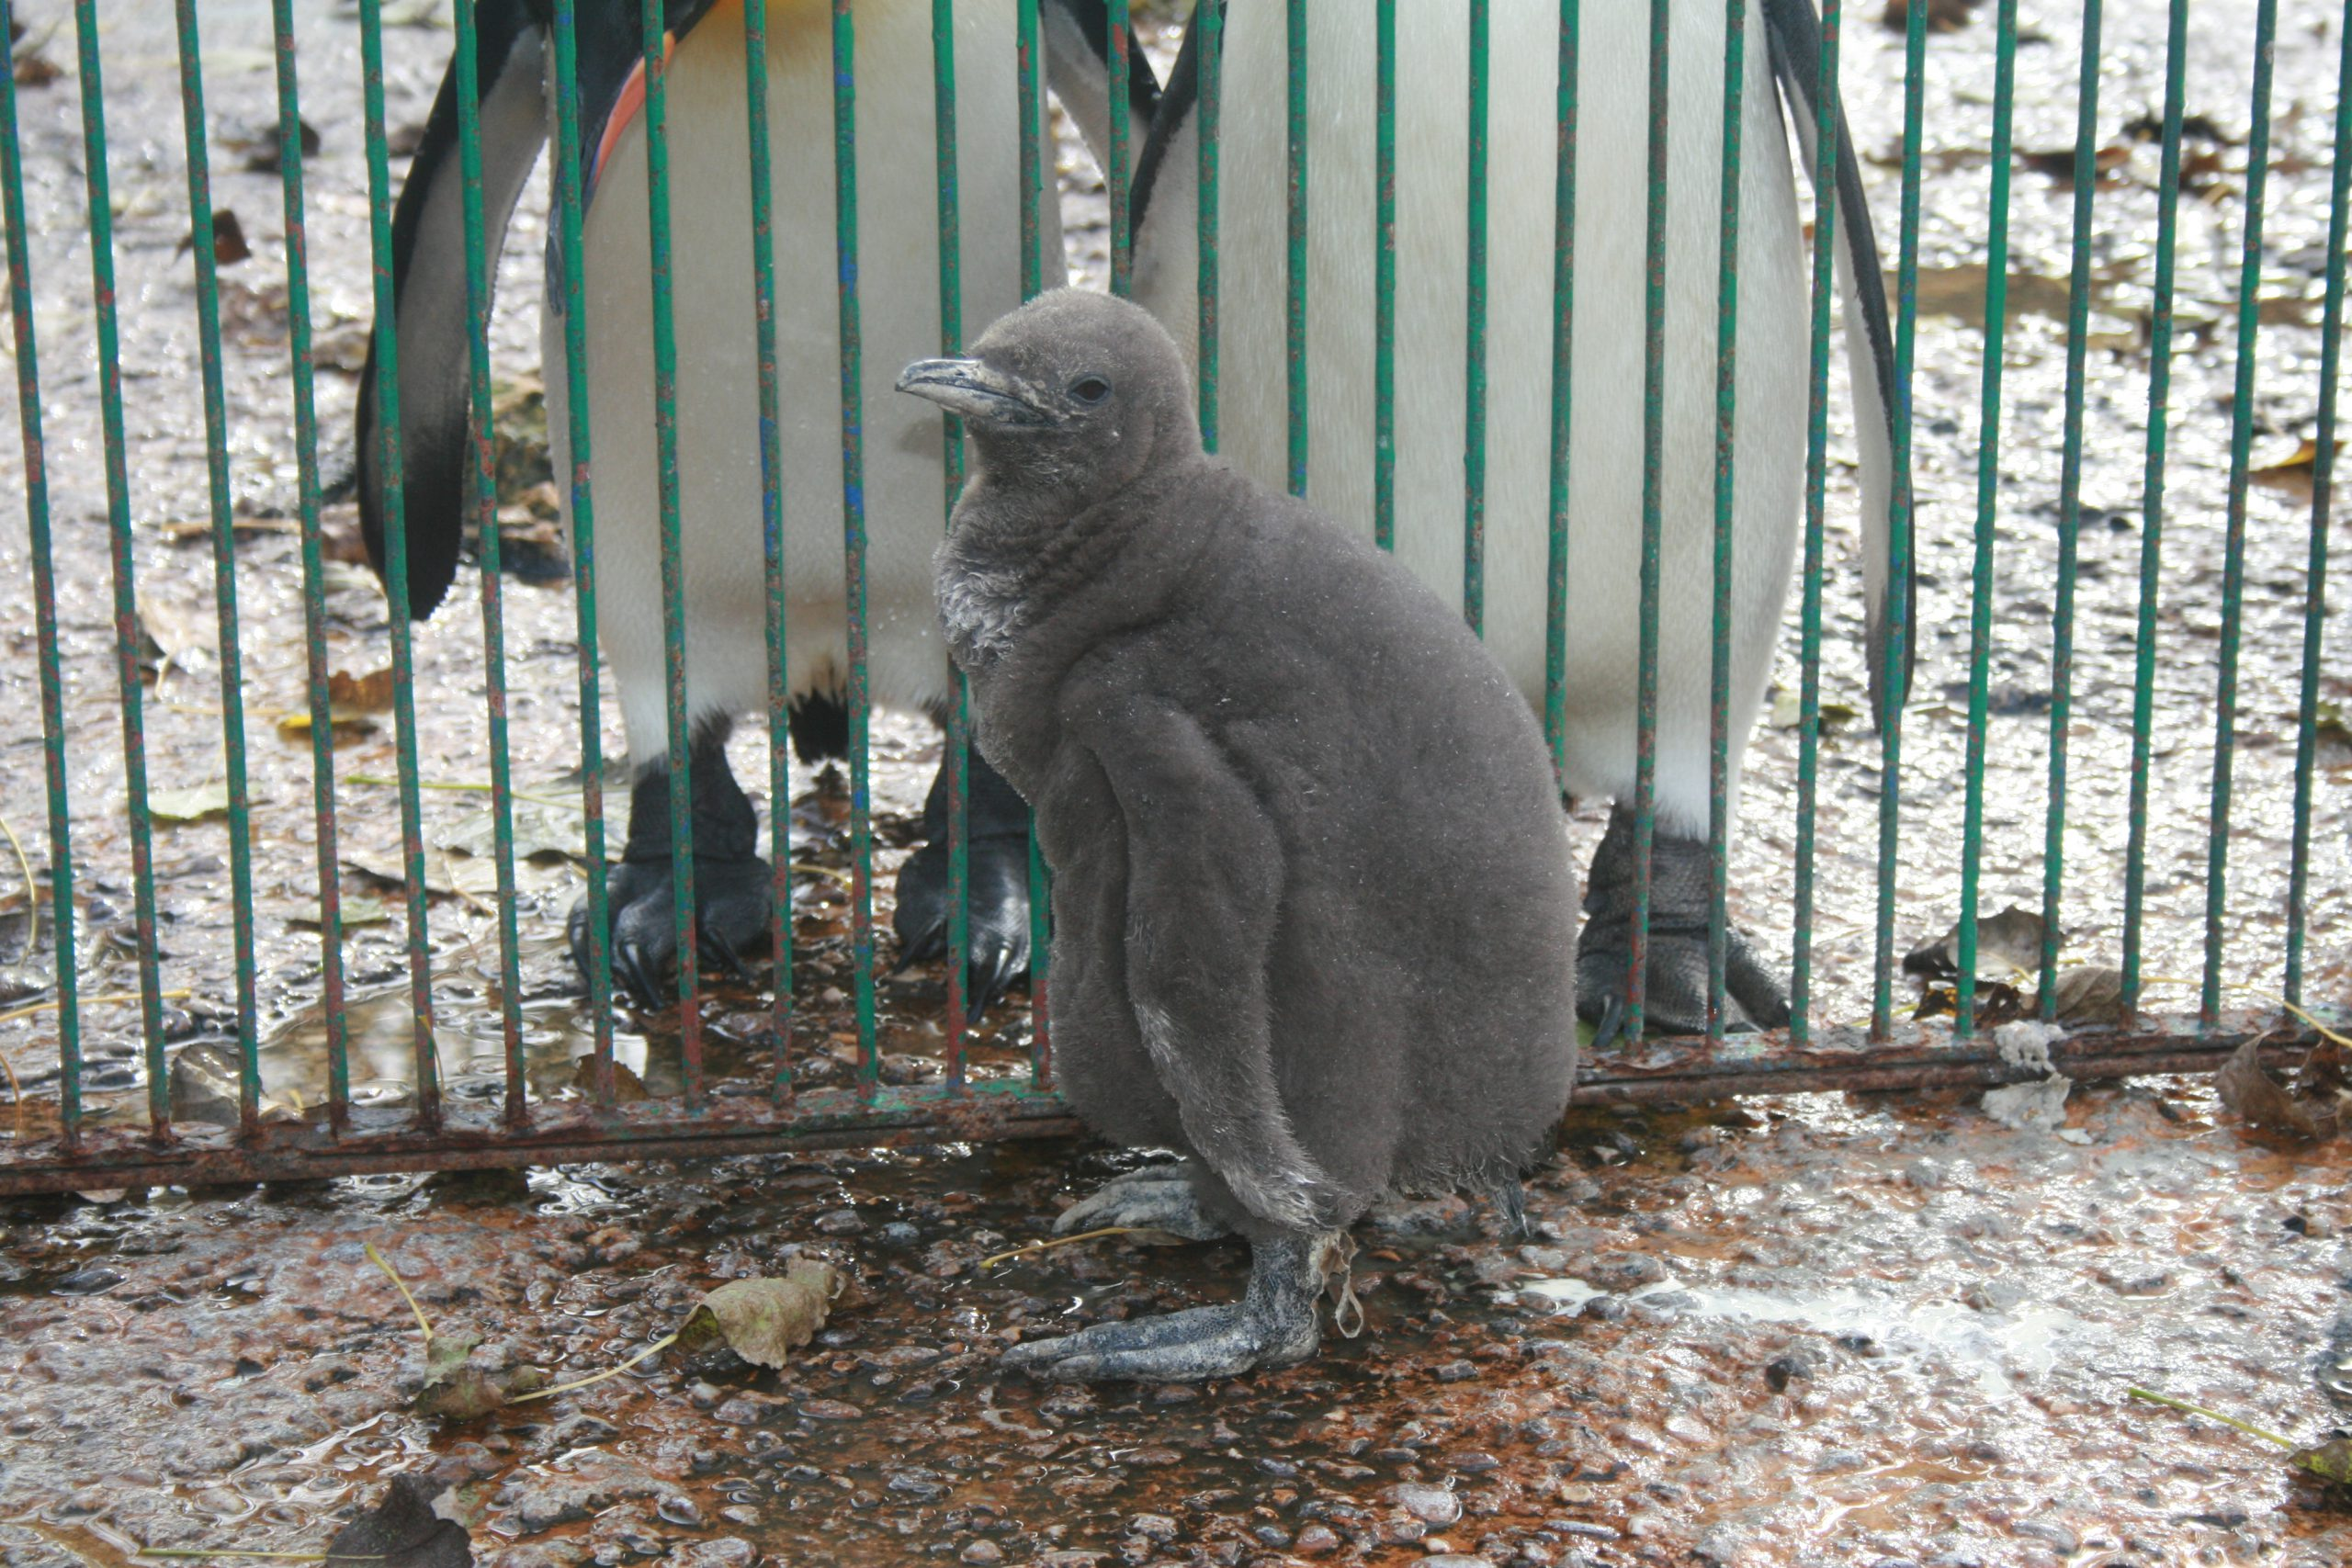 IMG 8137 1 scaled - 17th of October 2014 - Species Spotlight King Penguin Chick 2